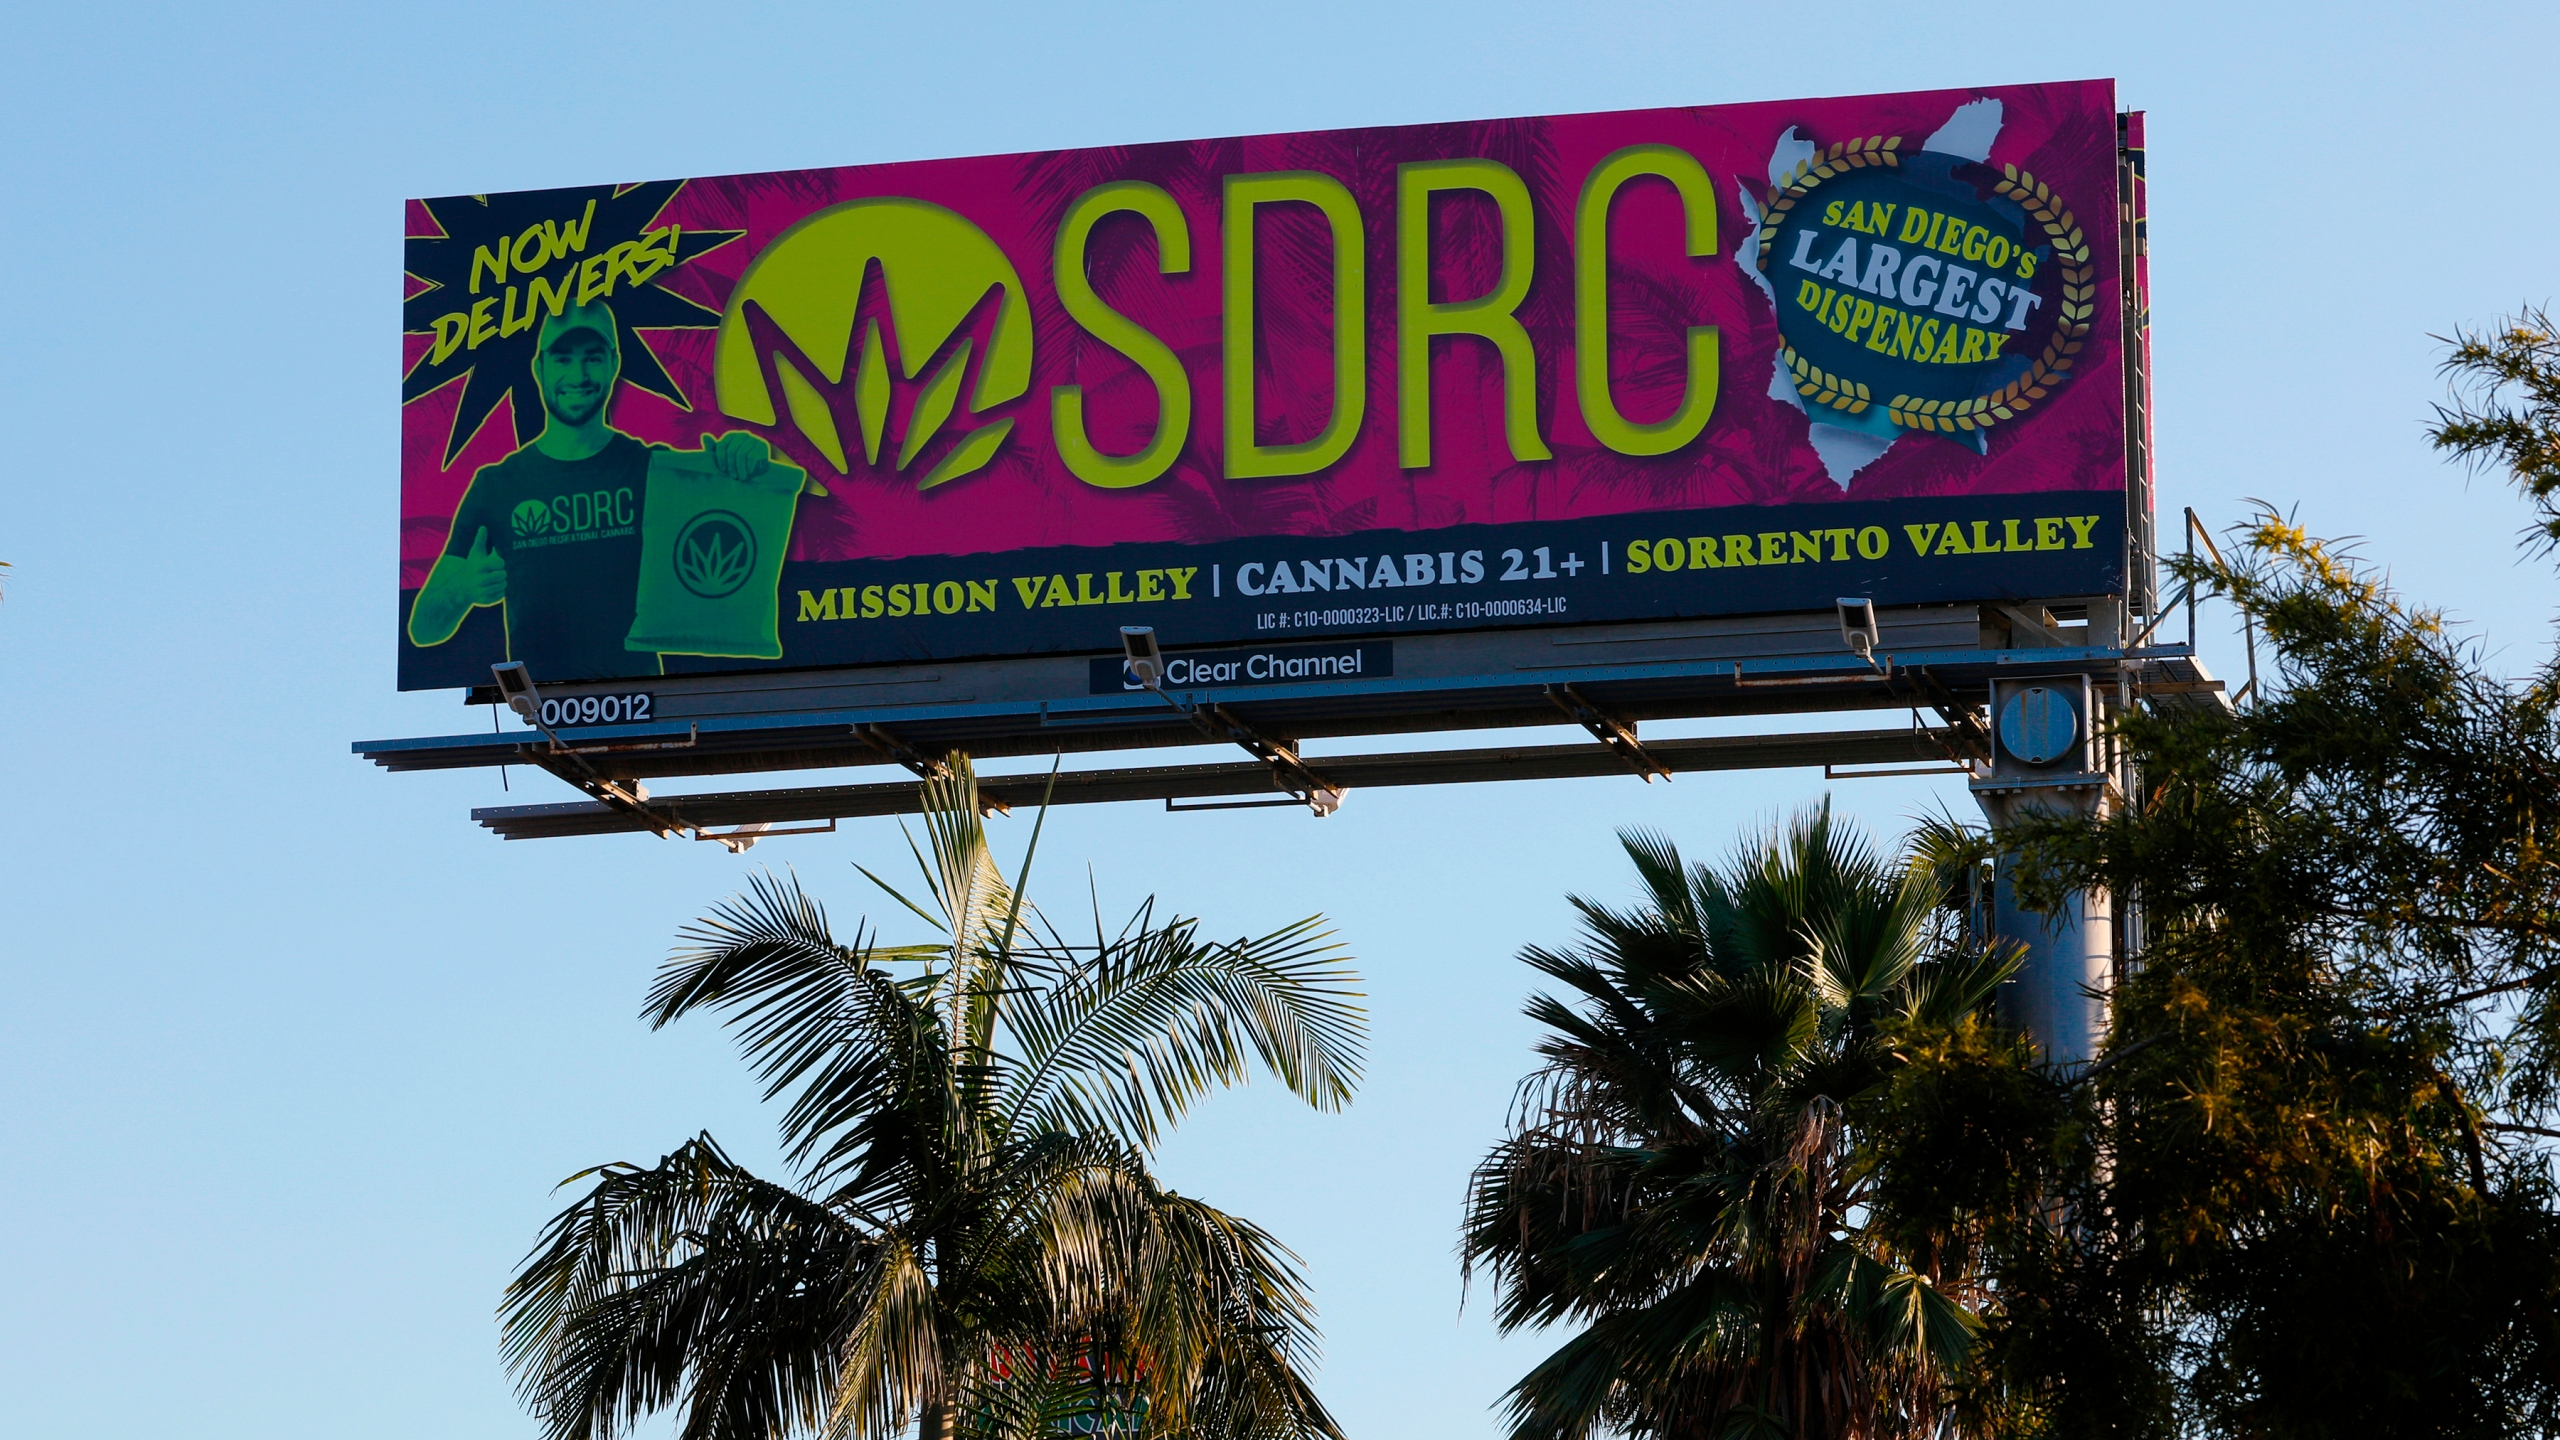 In this Jan. 13, 2020, file photo, a billboard in San Diego advertises a cannabis dispensary. (Nelvin C. Cepeda/The San Diego Union-Tribune via AP)